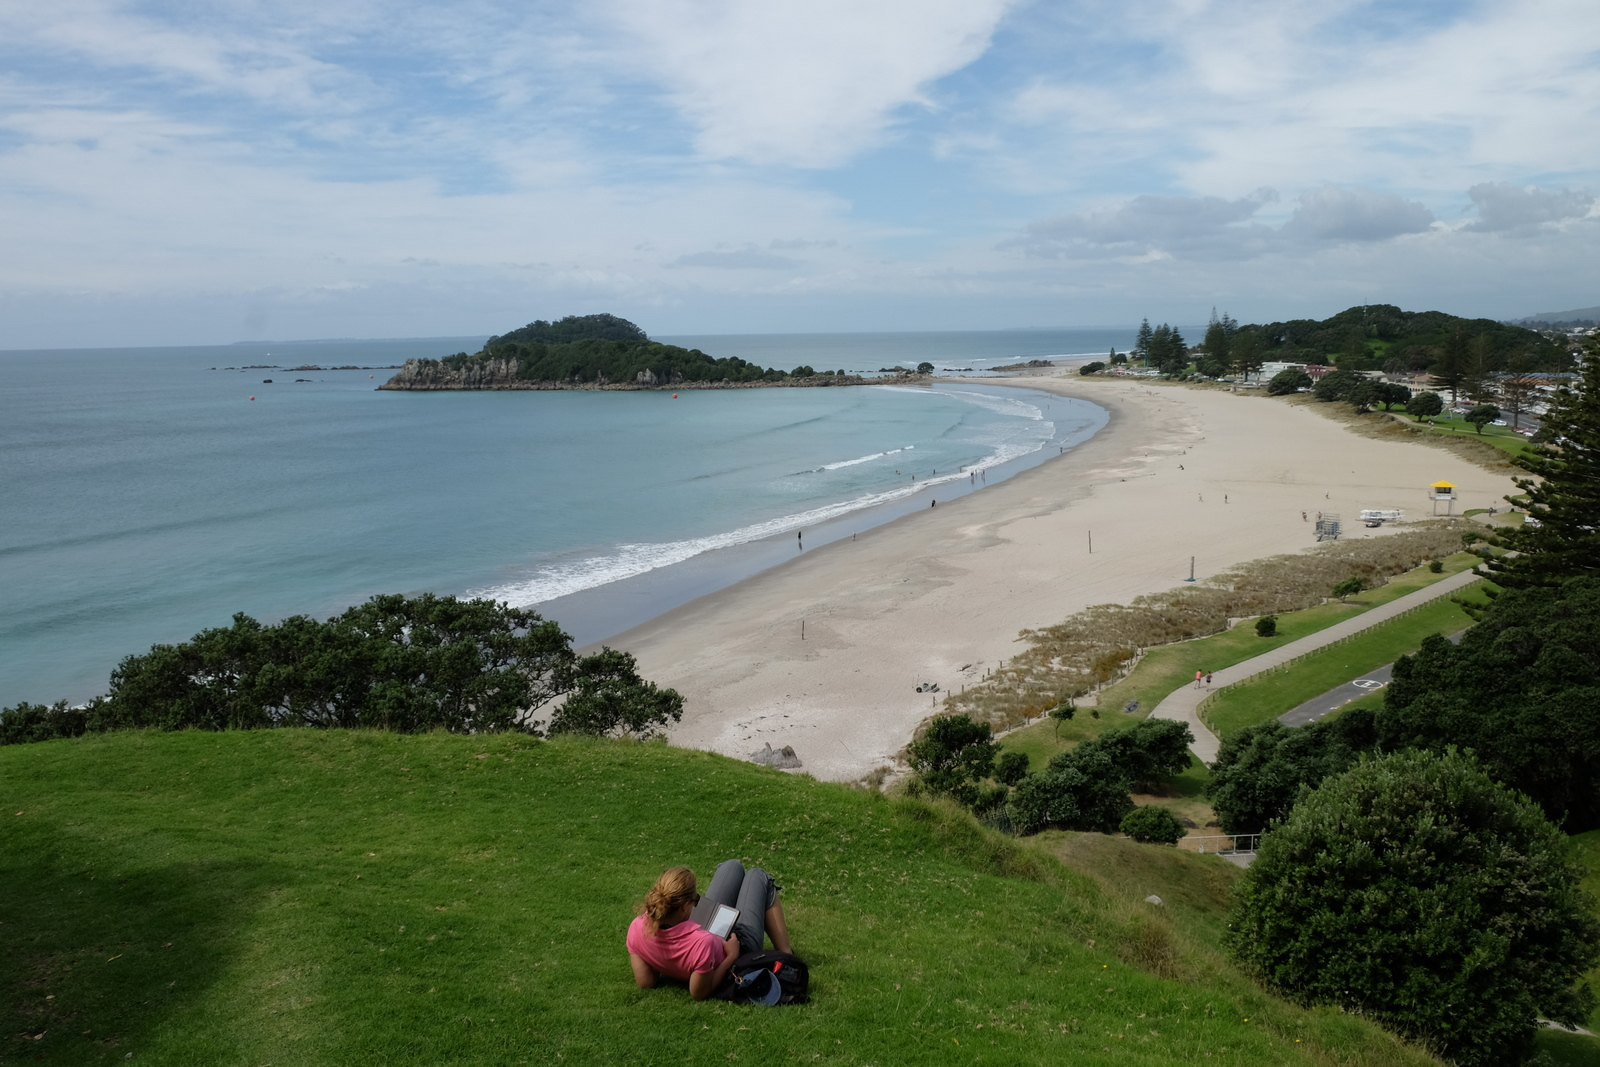 The beach at Mount Moanganui is a dreamy spot on the Bay of Plenty.